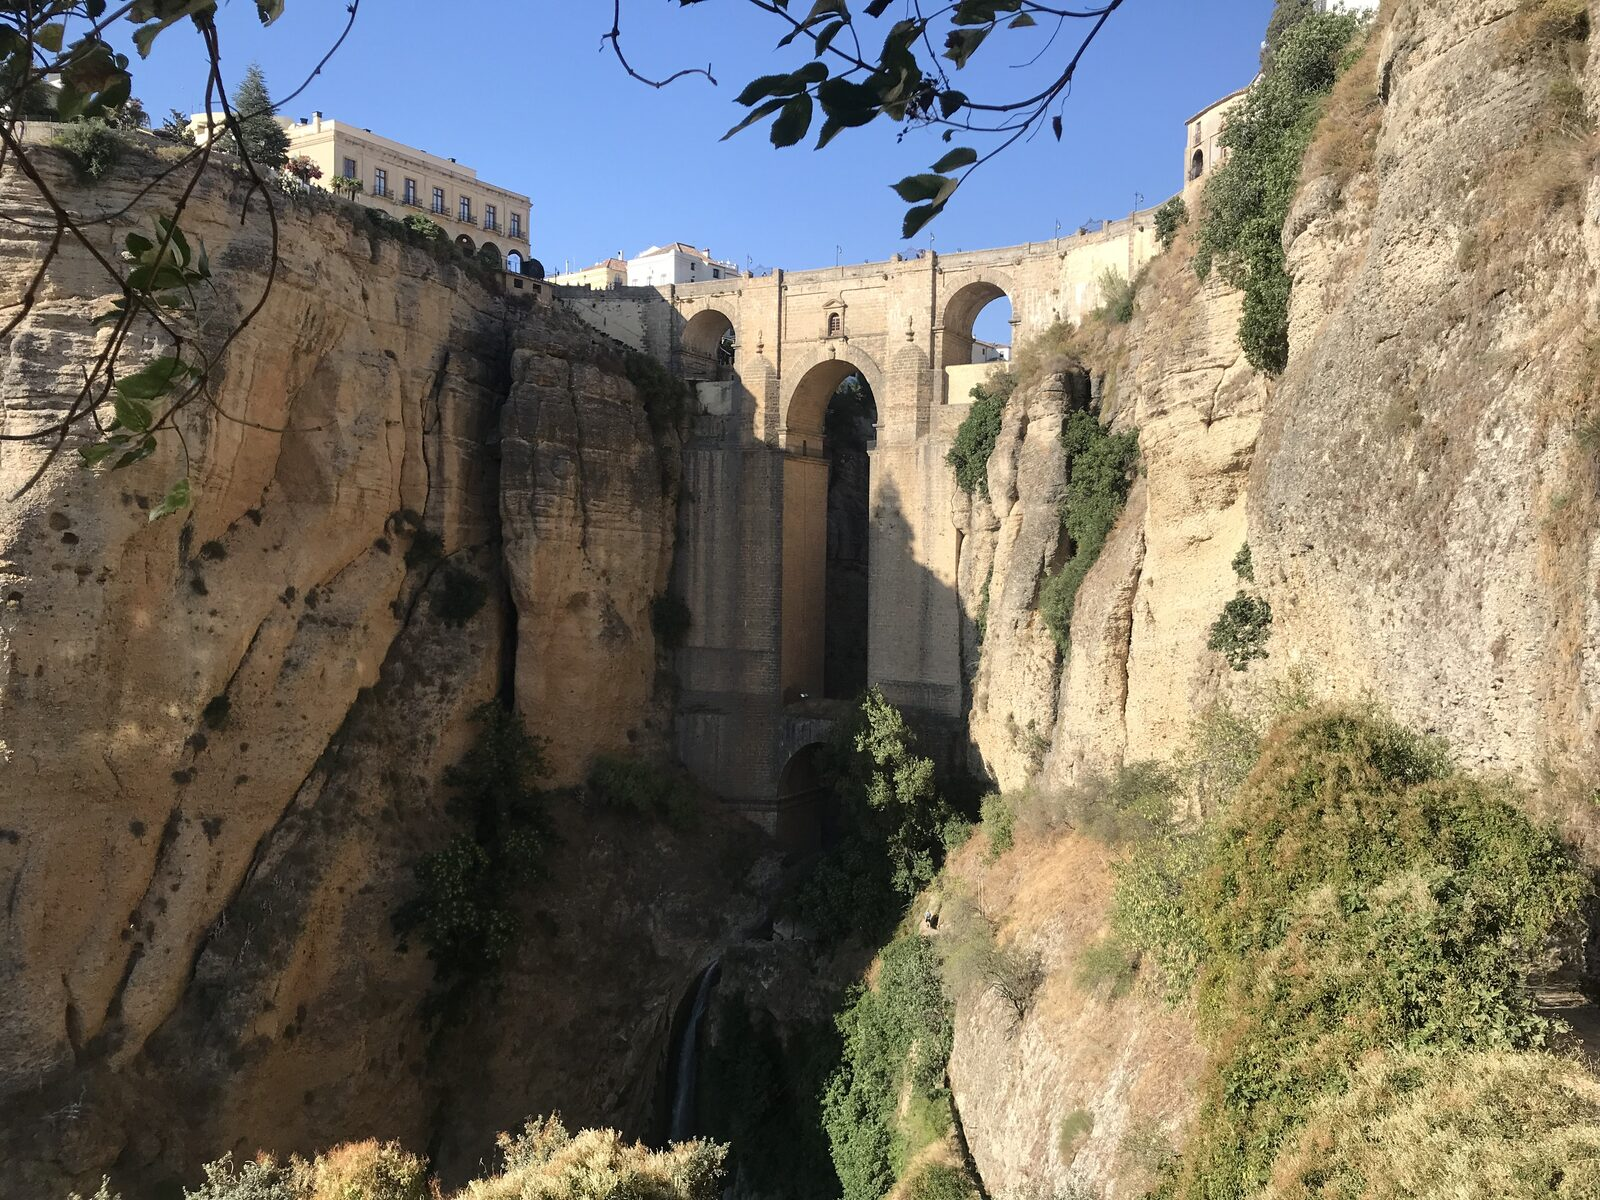 Walking through the gorge of Ronda